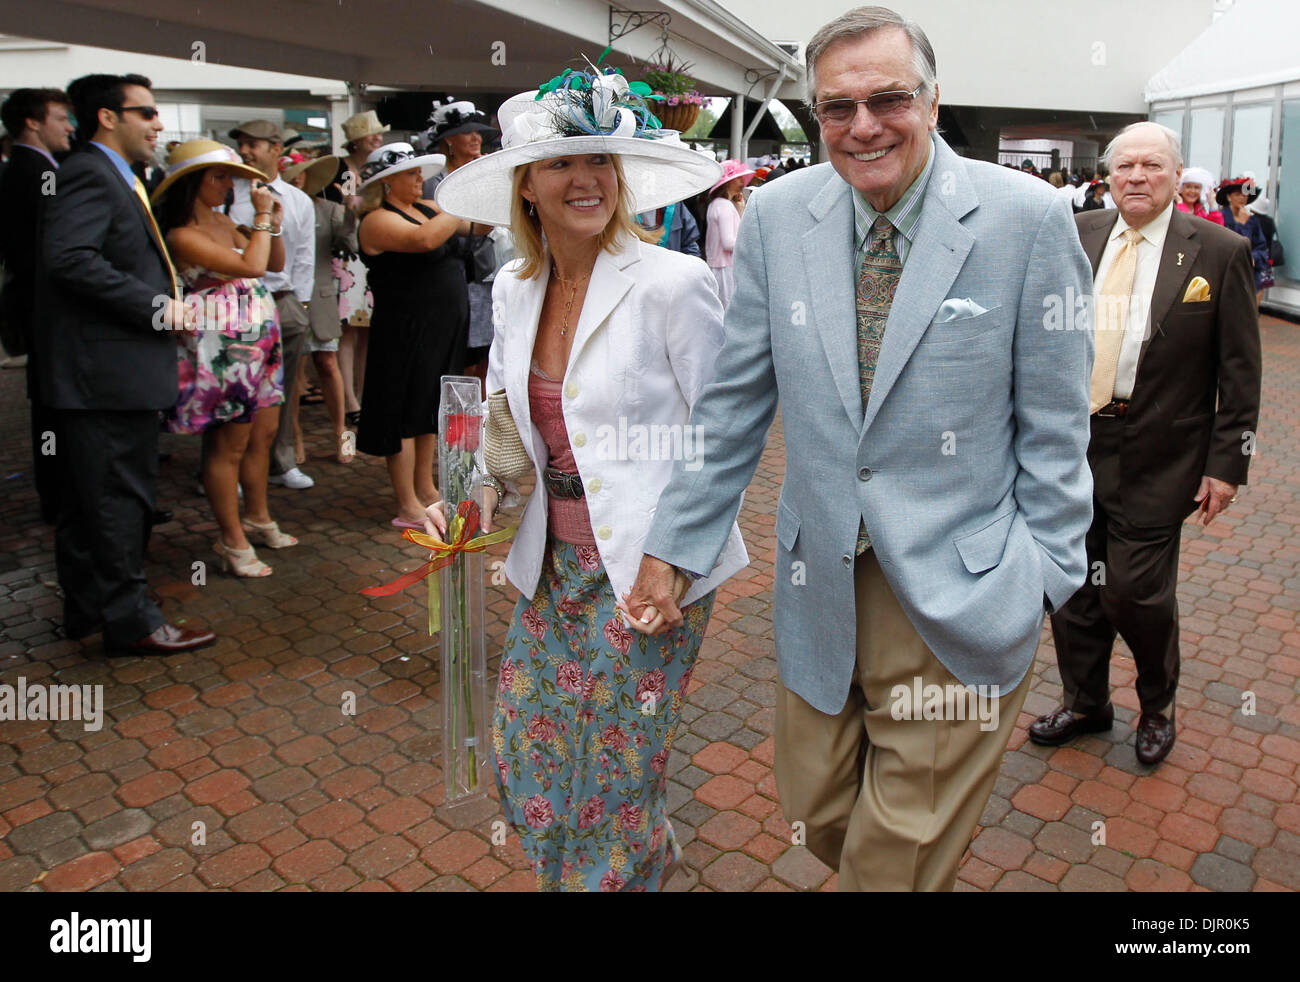 May 01, 2010 - Louisville, Kentucky, U.S. - Peter Marshall, former ''Hollywood Squares'' gameshow host, and his wife, Lori, arrived at the 136th running of the Kentucky Derby at Churchill Downs Saturday May 1, 2010. Photo by Charles Bertram (Credit Image: © Lexington Herald-Leader/ZUMApress.com) - Stock Image